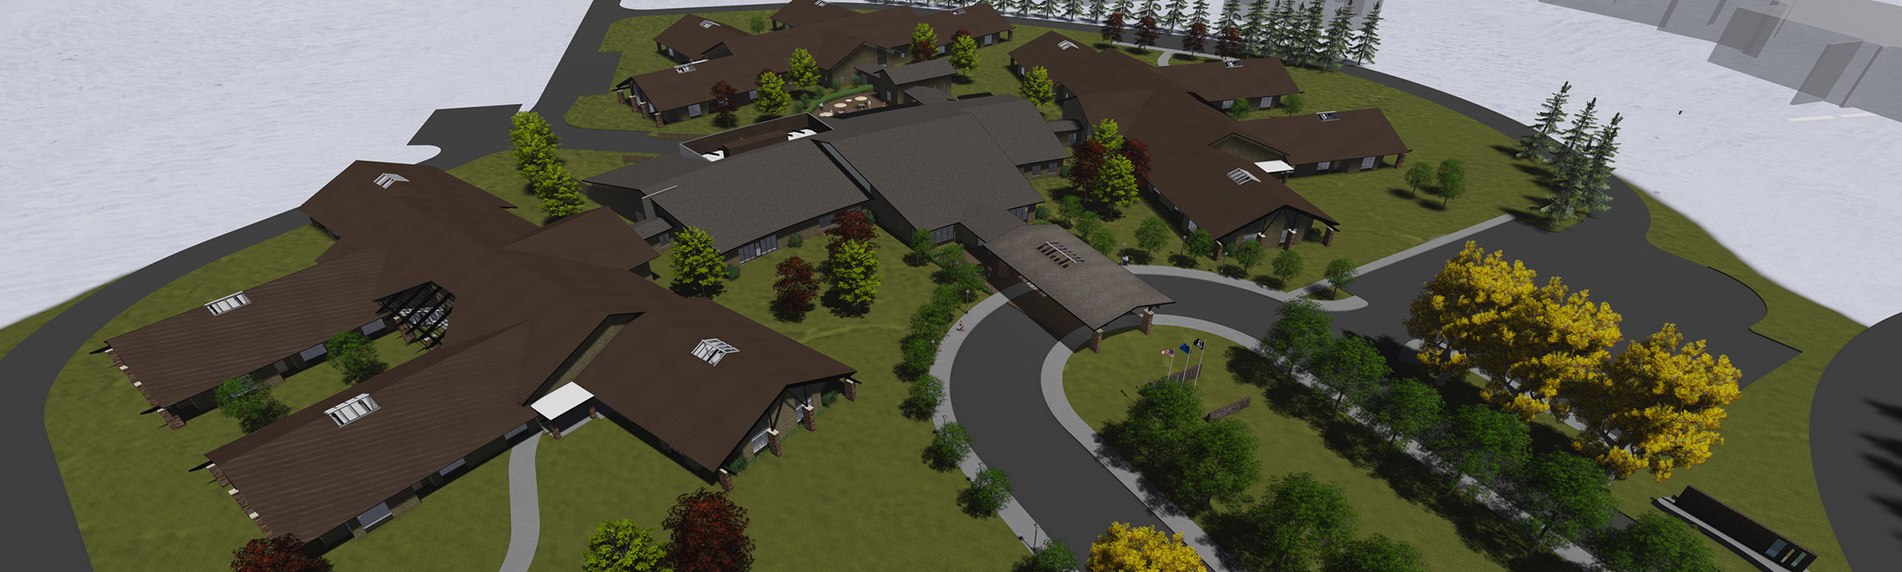 new veterans home in northern nevada